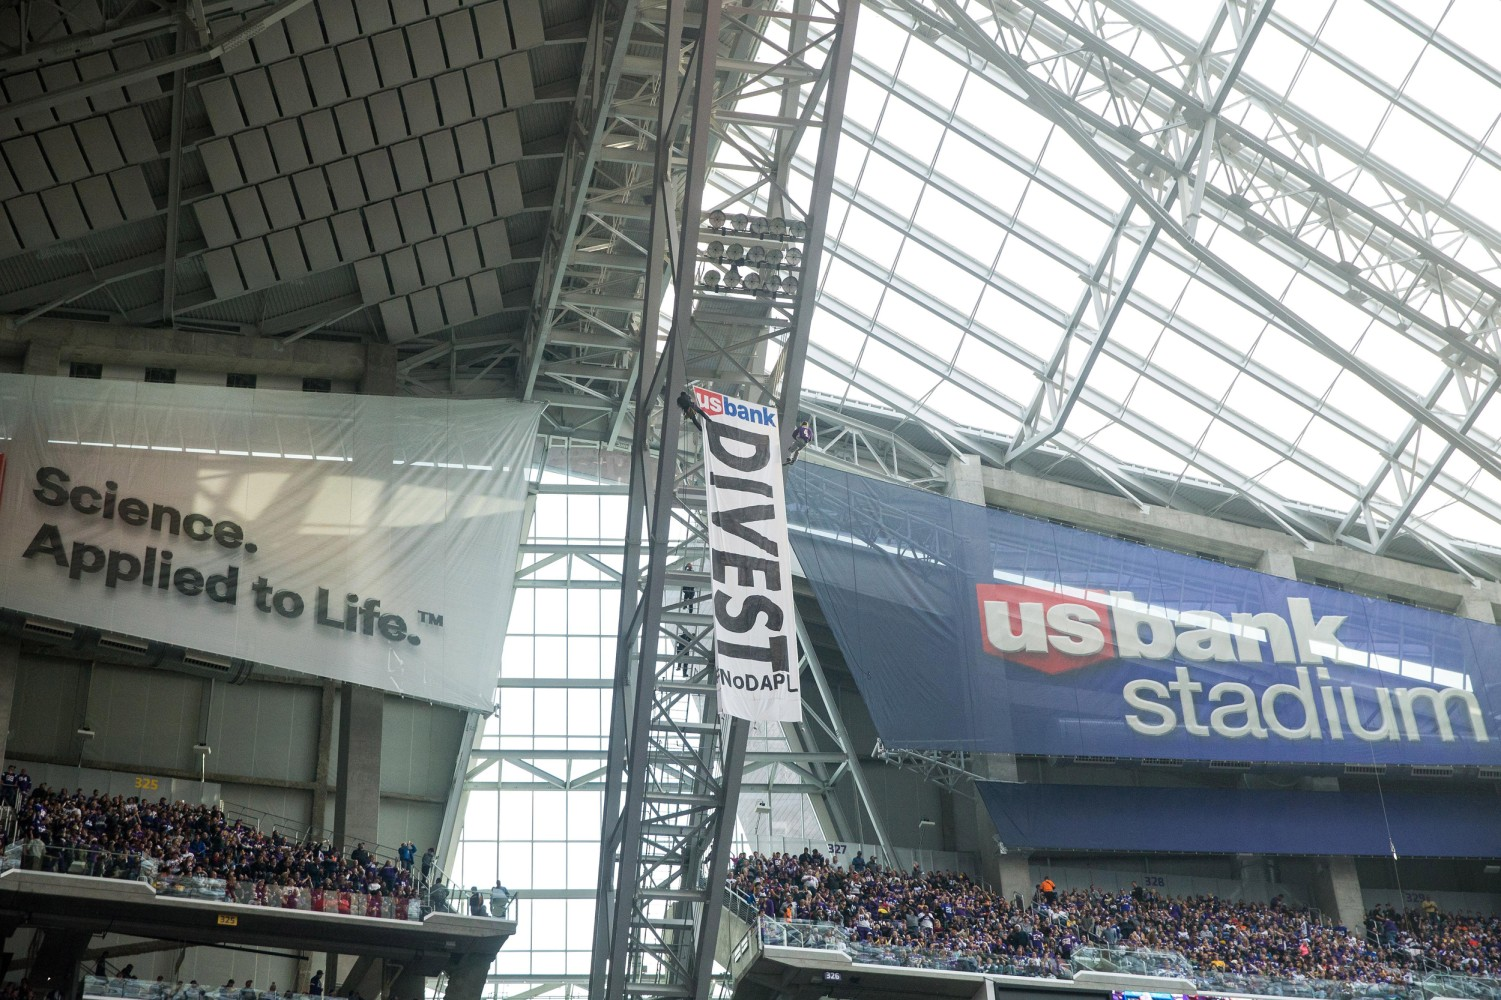 Protestors hang Dakota Access Pipeline banner at Vikings' game